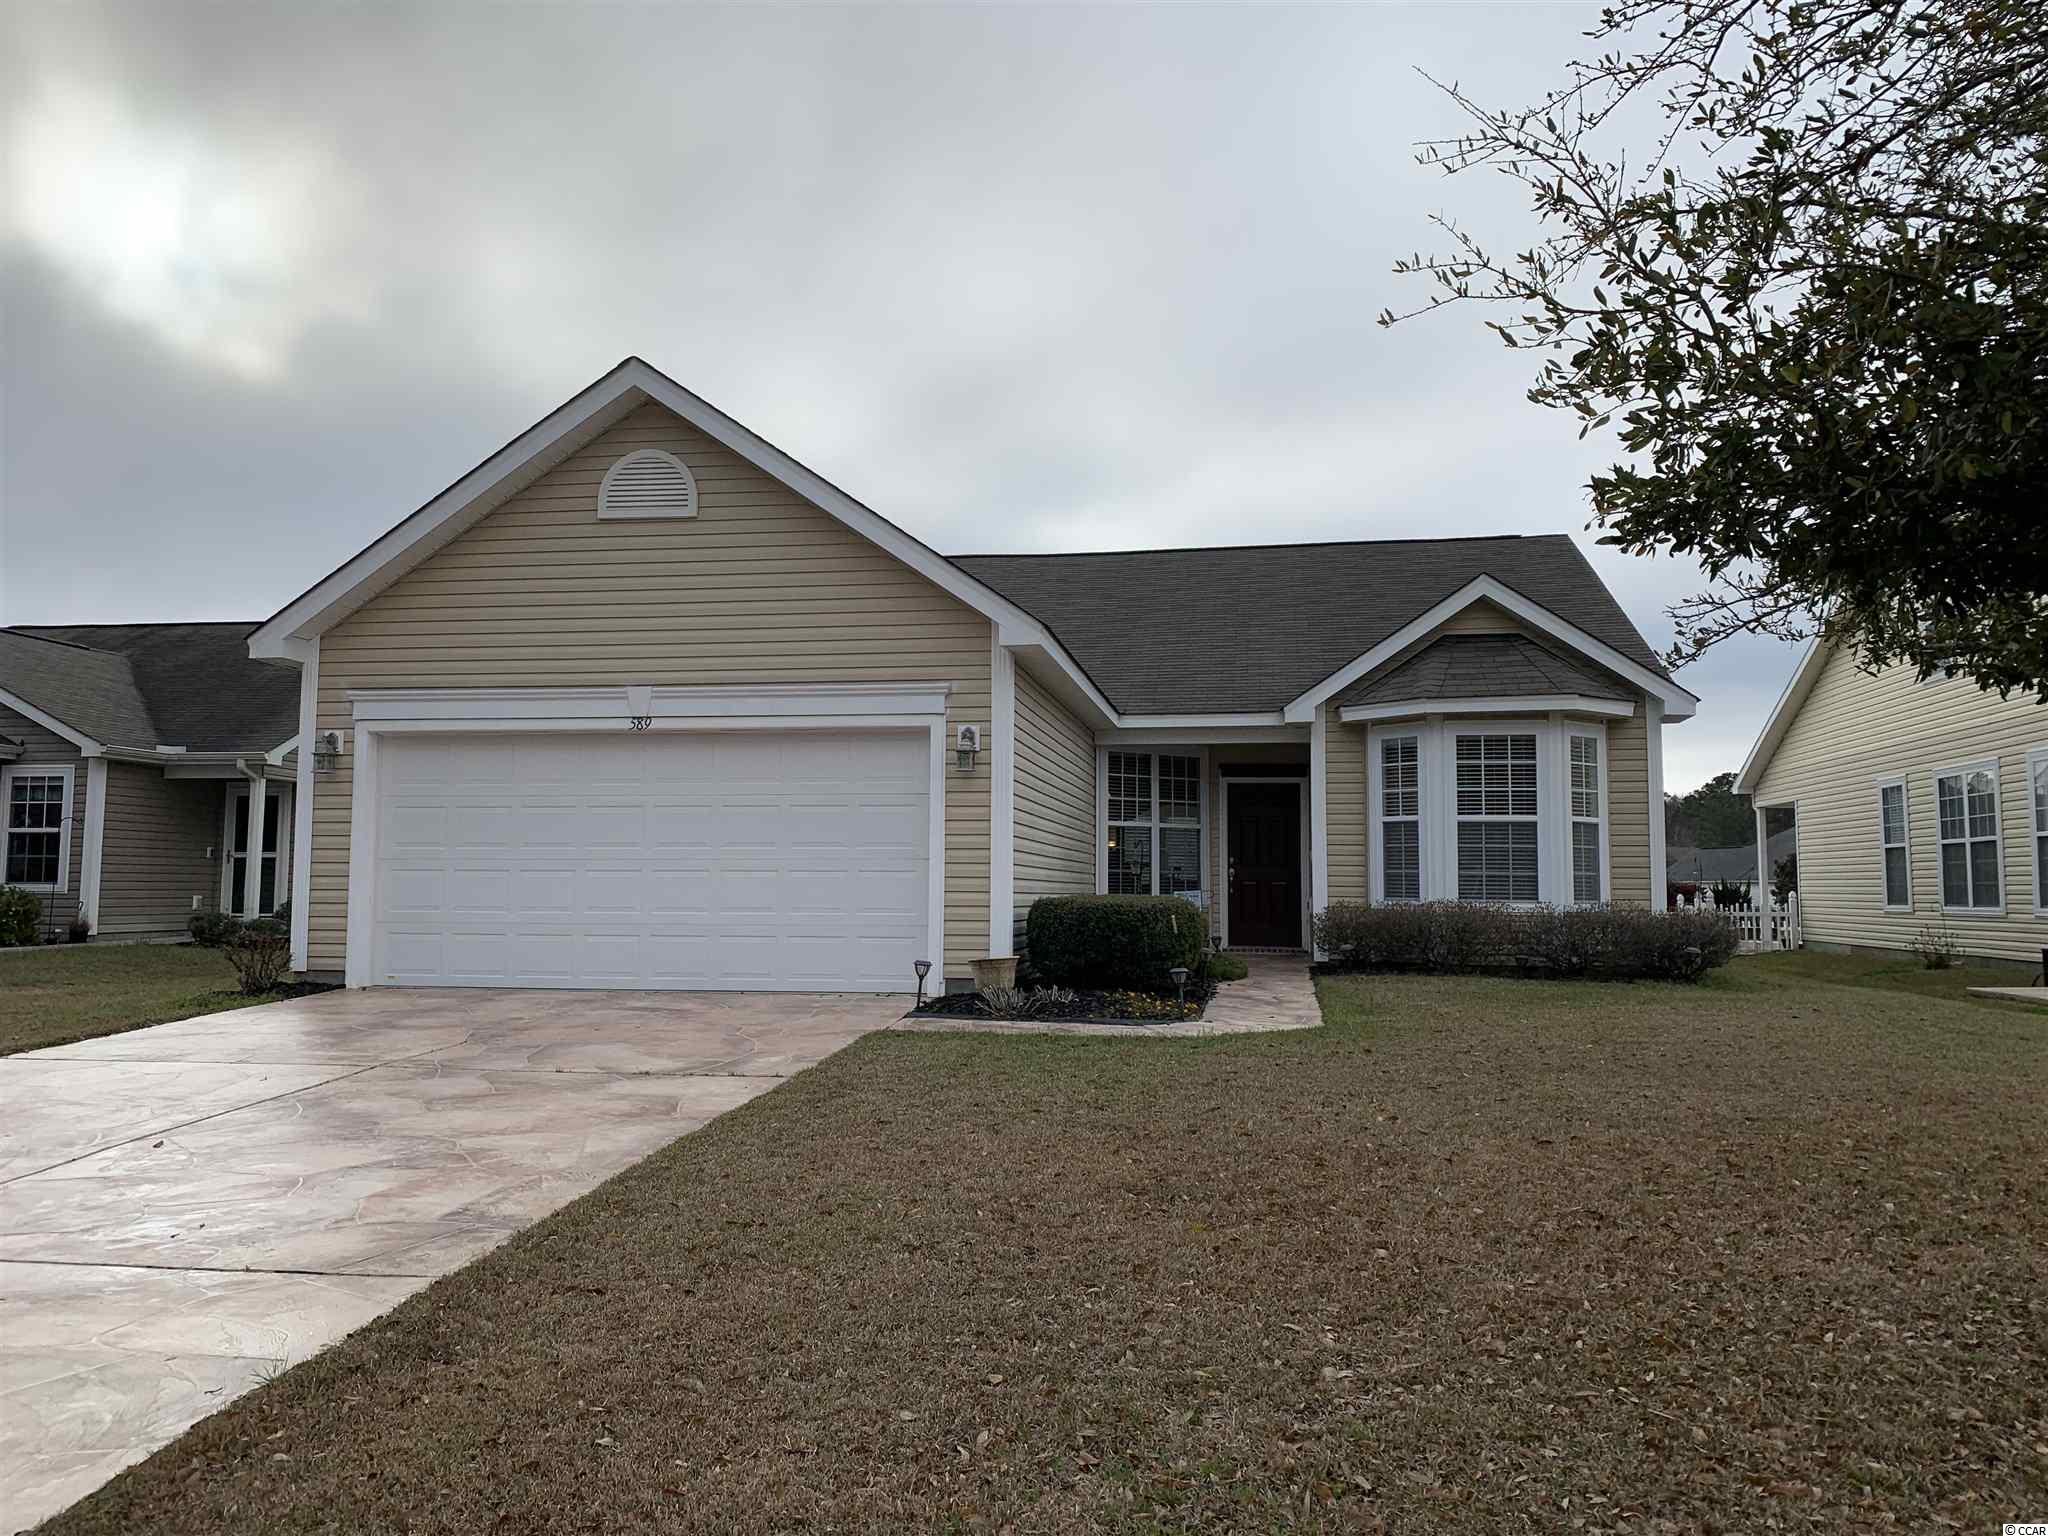 IMMACULATE and won't last long! This well maintained home is in the very desirable and quiet community of Hidden Lakes Village. This home features an open floor plan with vaulted ceilings throughout the main living areas. The master bedroom features a large walk-in closet and the master bath has double sink vanities, an oversized garden tub and an upgraded walk-in shower. The guest bedrooms both have ample closet space and share a separate bath. A screen room was recently added to allow for early morning breakfast or late afternoon get togethers. The screen room and Carolina room open to the backyard that has a 2 tiered stone wall that goes to the waters edge. HVAC system and ductwork were replaced in 2018. New hot water heater installed in 2019. Hidden Lakes Village offers a community pool, hot tub, tennis court and pool house  with playground.